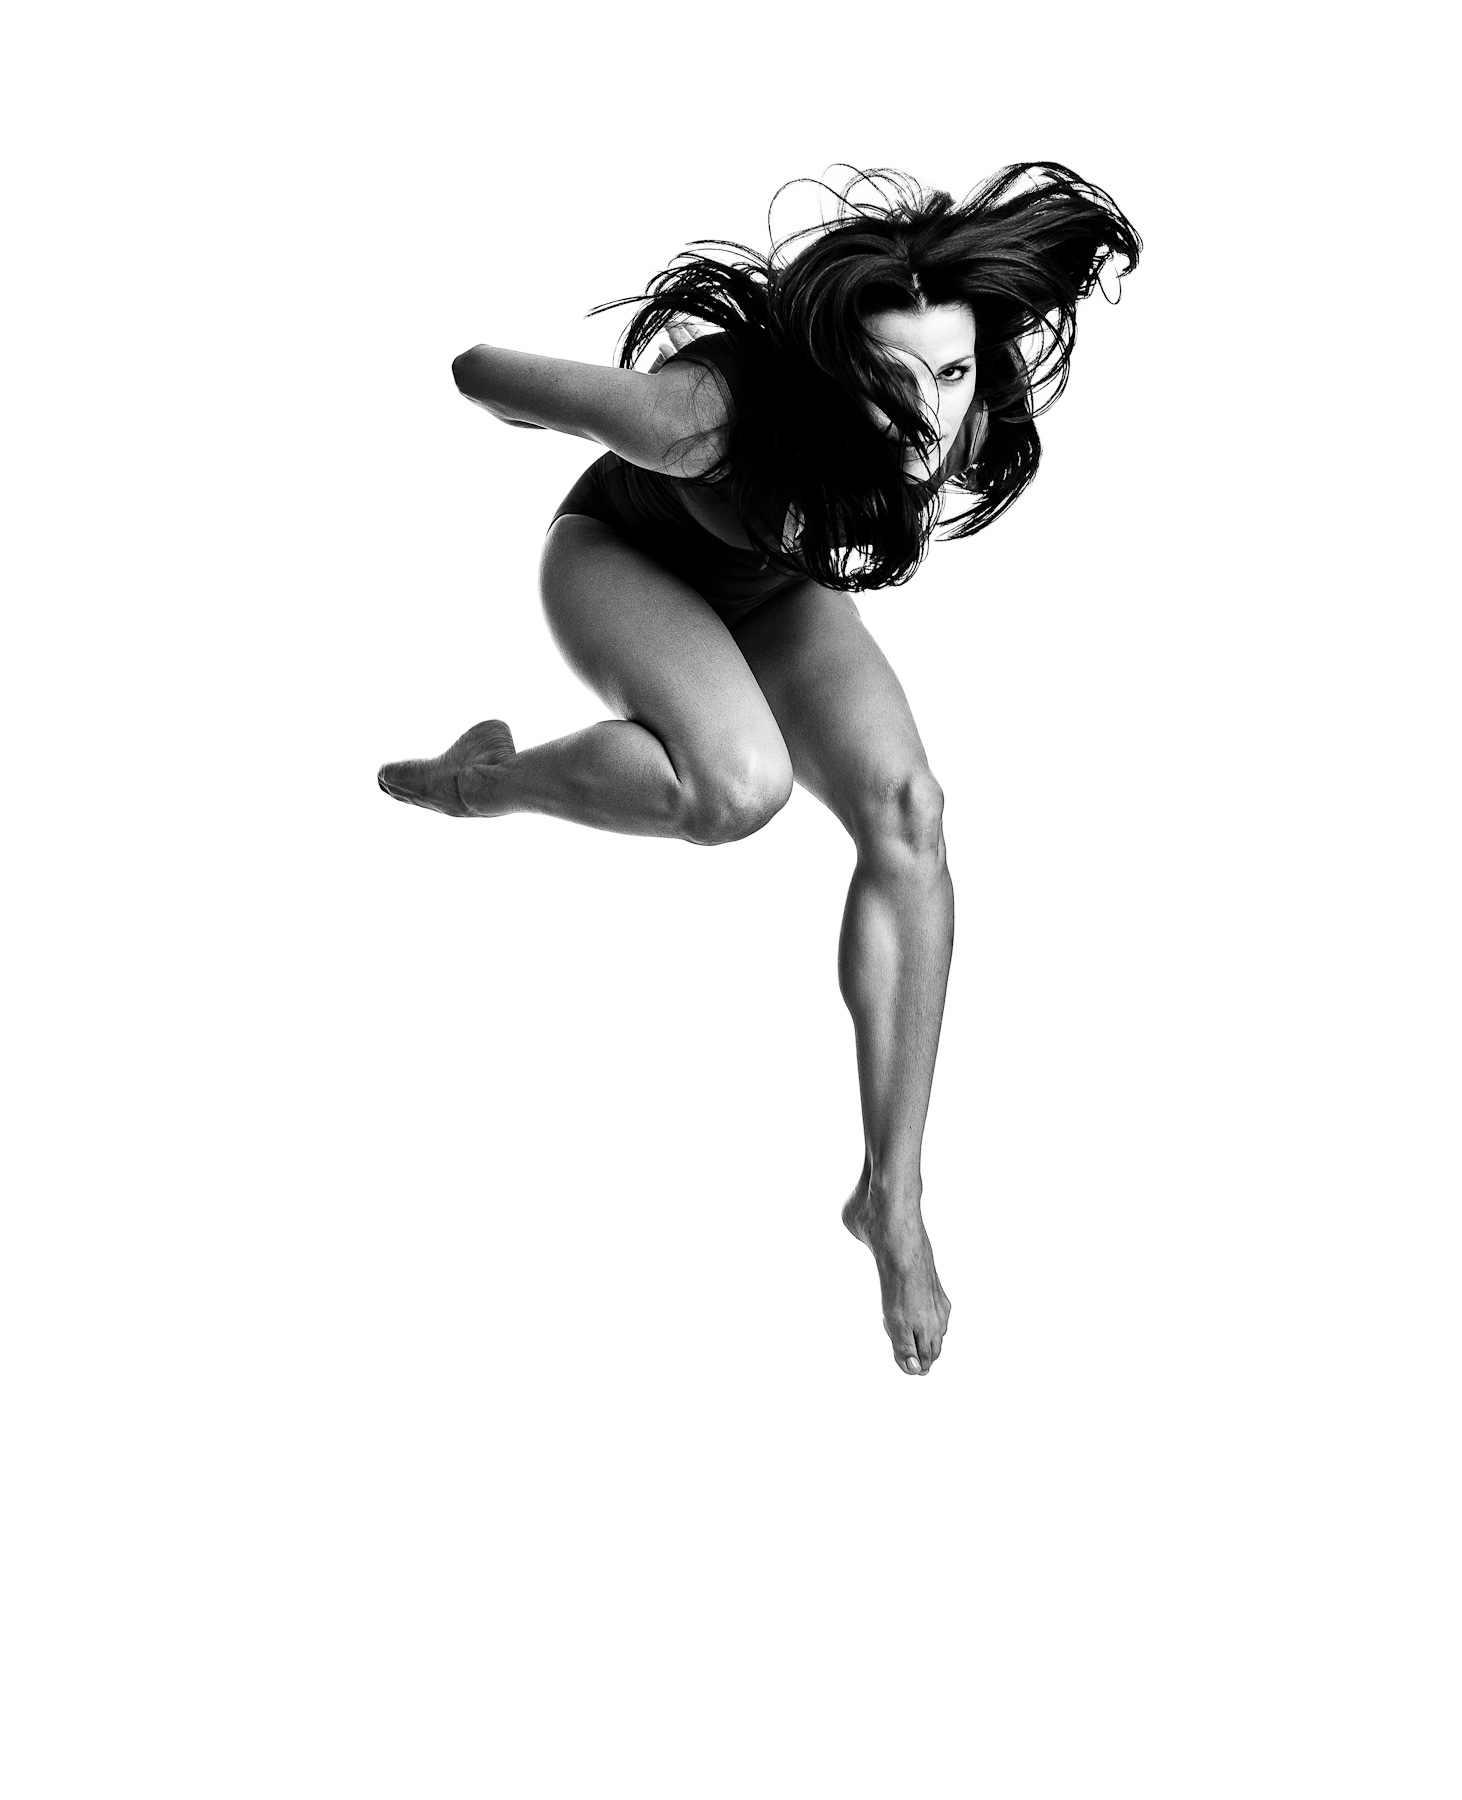 Dancer Crystal Peattie